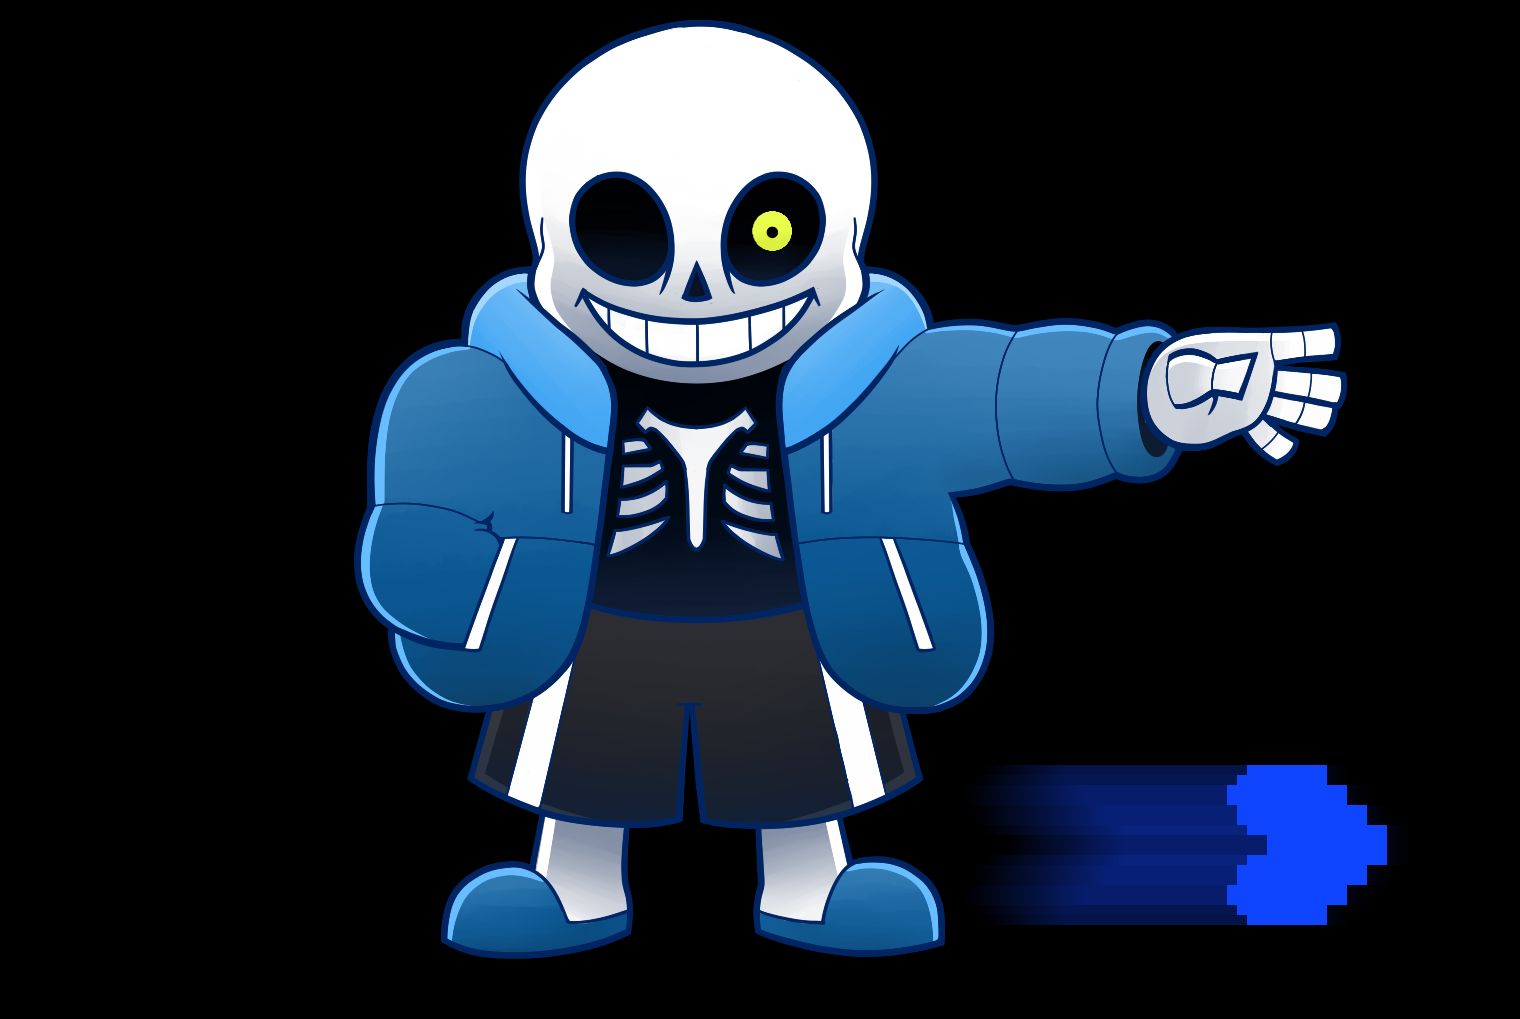 How deadly would I be if I could wield the powers of Sans from